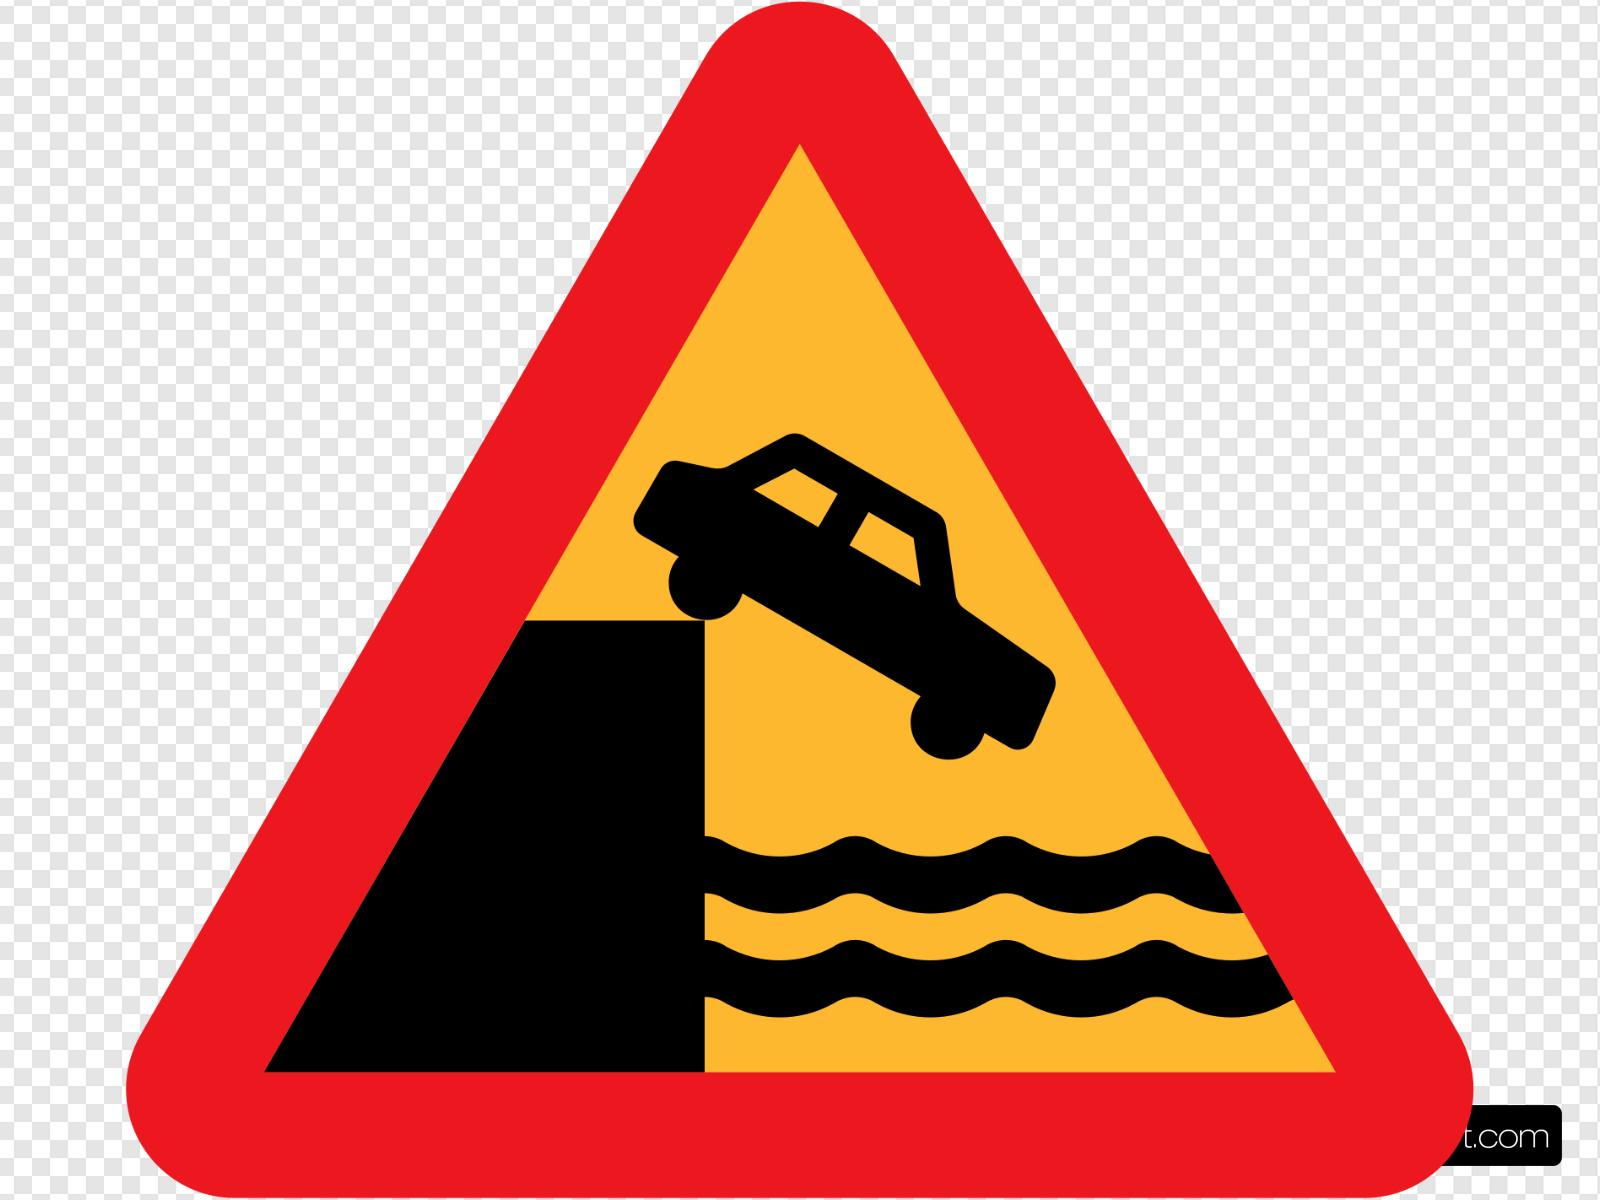 Caution Dont Drive Over A Cliff Into The Ocean Clip art.